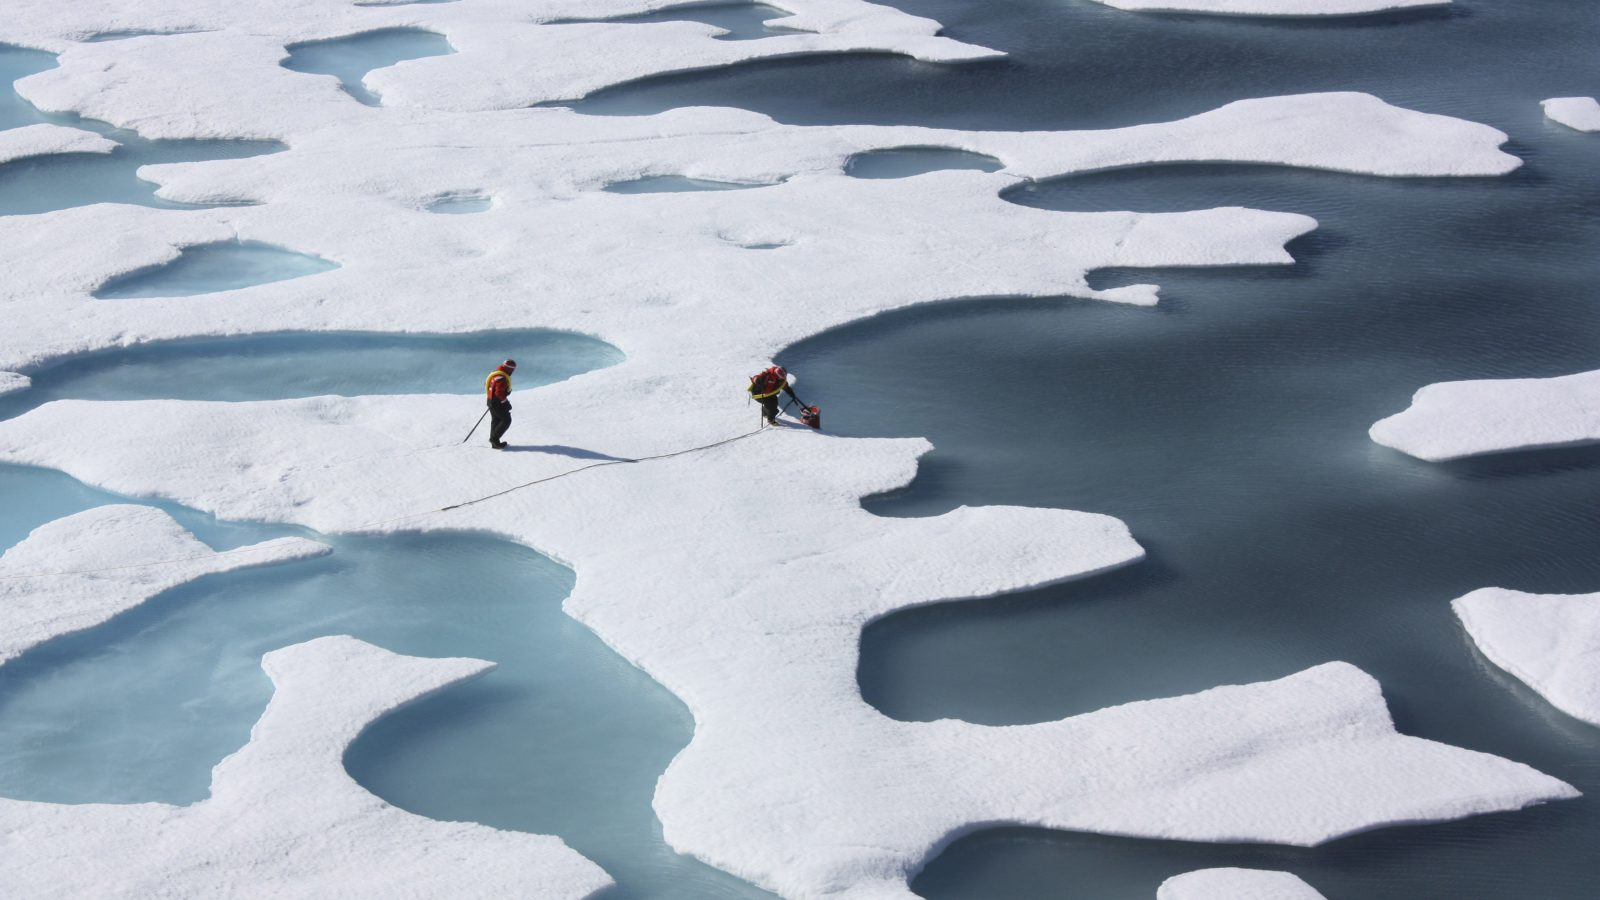 Scientists punched through the sea ice to find waters richer in phytoplankton than any other region on earth.  Phytoplankton, the base component of the marine food chain, were thought to grow in the Arctic Ocean only after sea ice had retreated for the summer. Scientists now think that the thinning Arctic ice is allowing sunlight to reach the waters under the sea ice, catalyzing the plant blooms where they had never been observed. REUTERS/Kathryn Hansen/NASA   (UNITED STATES - Tags: ENVIRONMENT SCIENCE TECHNOLOGY) THIS IMAGE HAS BEEN SUPPLIED BY A THIRD PARTY. IT IS DISTRIBUTED, EXACTLY AS RECEIVED BY REUTERS, AS A SERVICE TO CLIENTS. FOR EDITORIAL USE ONLY. NOT FOR SALE FOR MARKETING OR ADVERTISING CAMPAIGNS - RTR33FOY